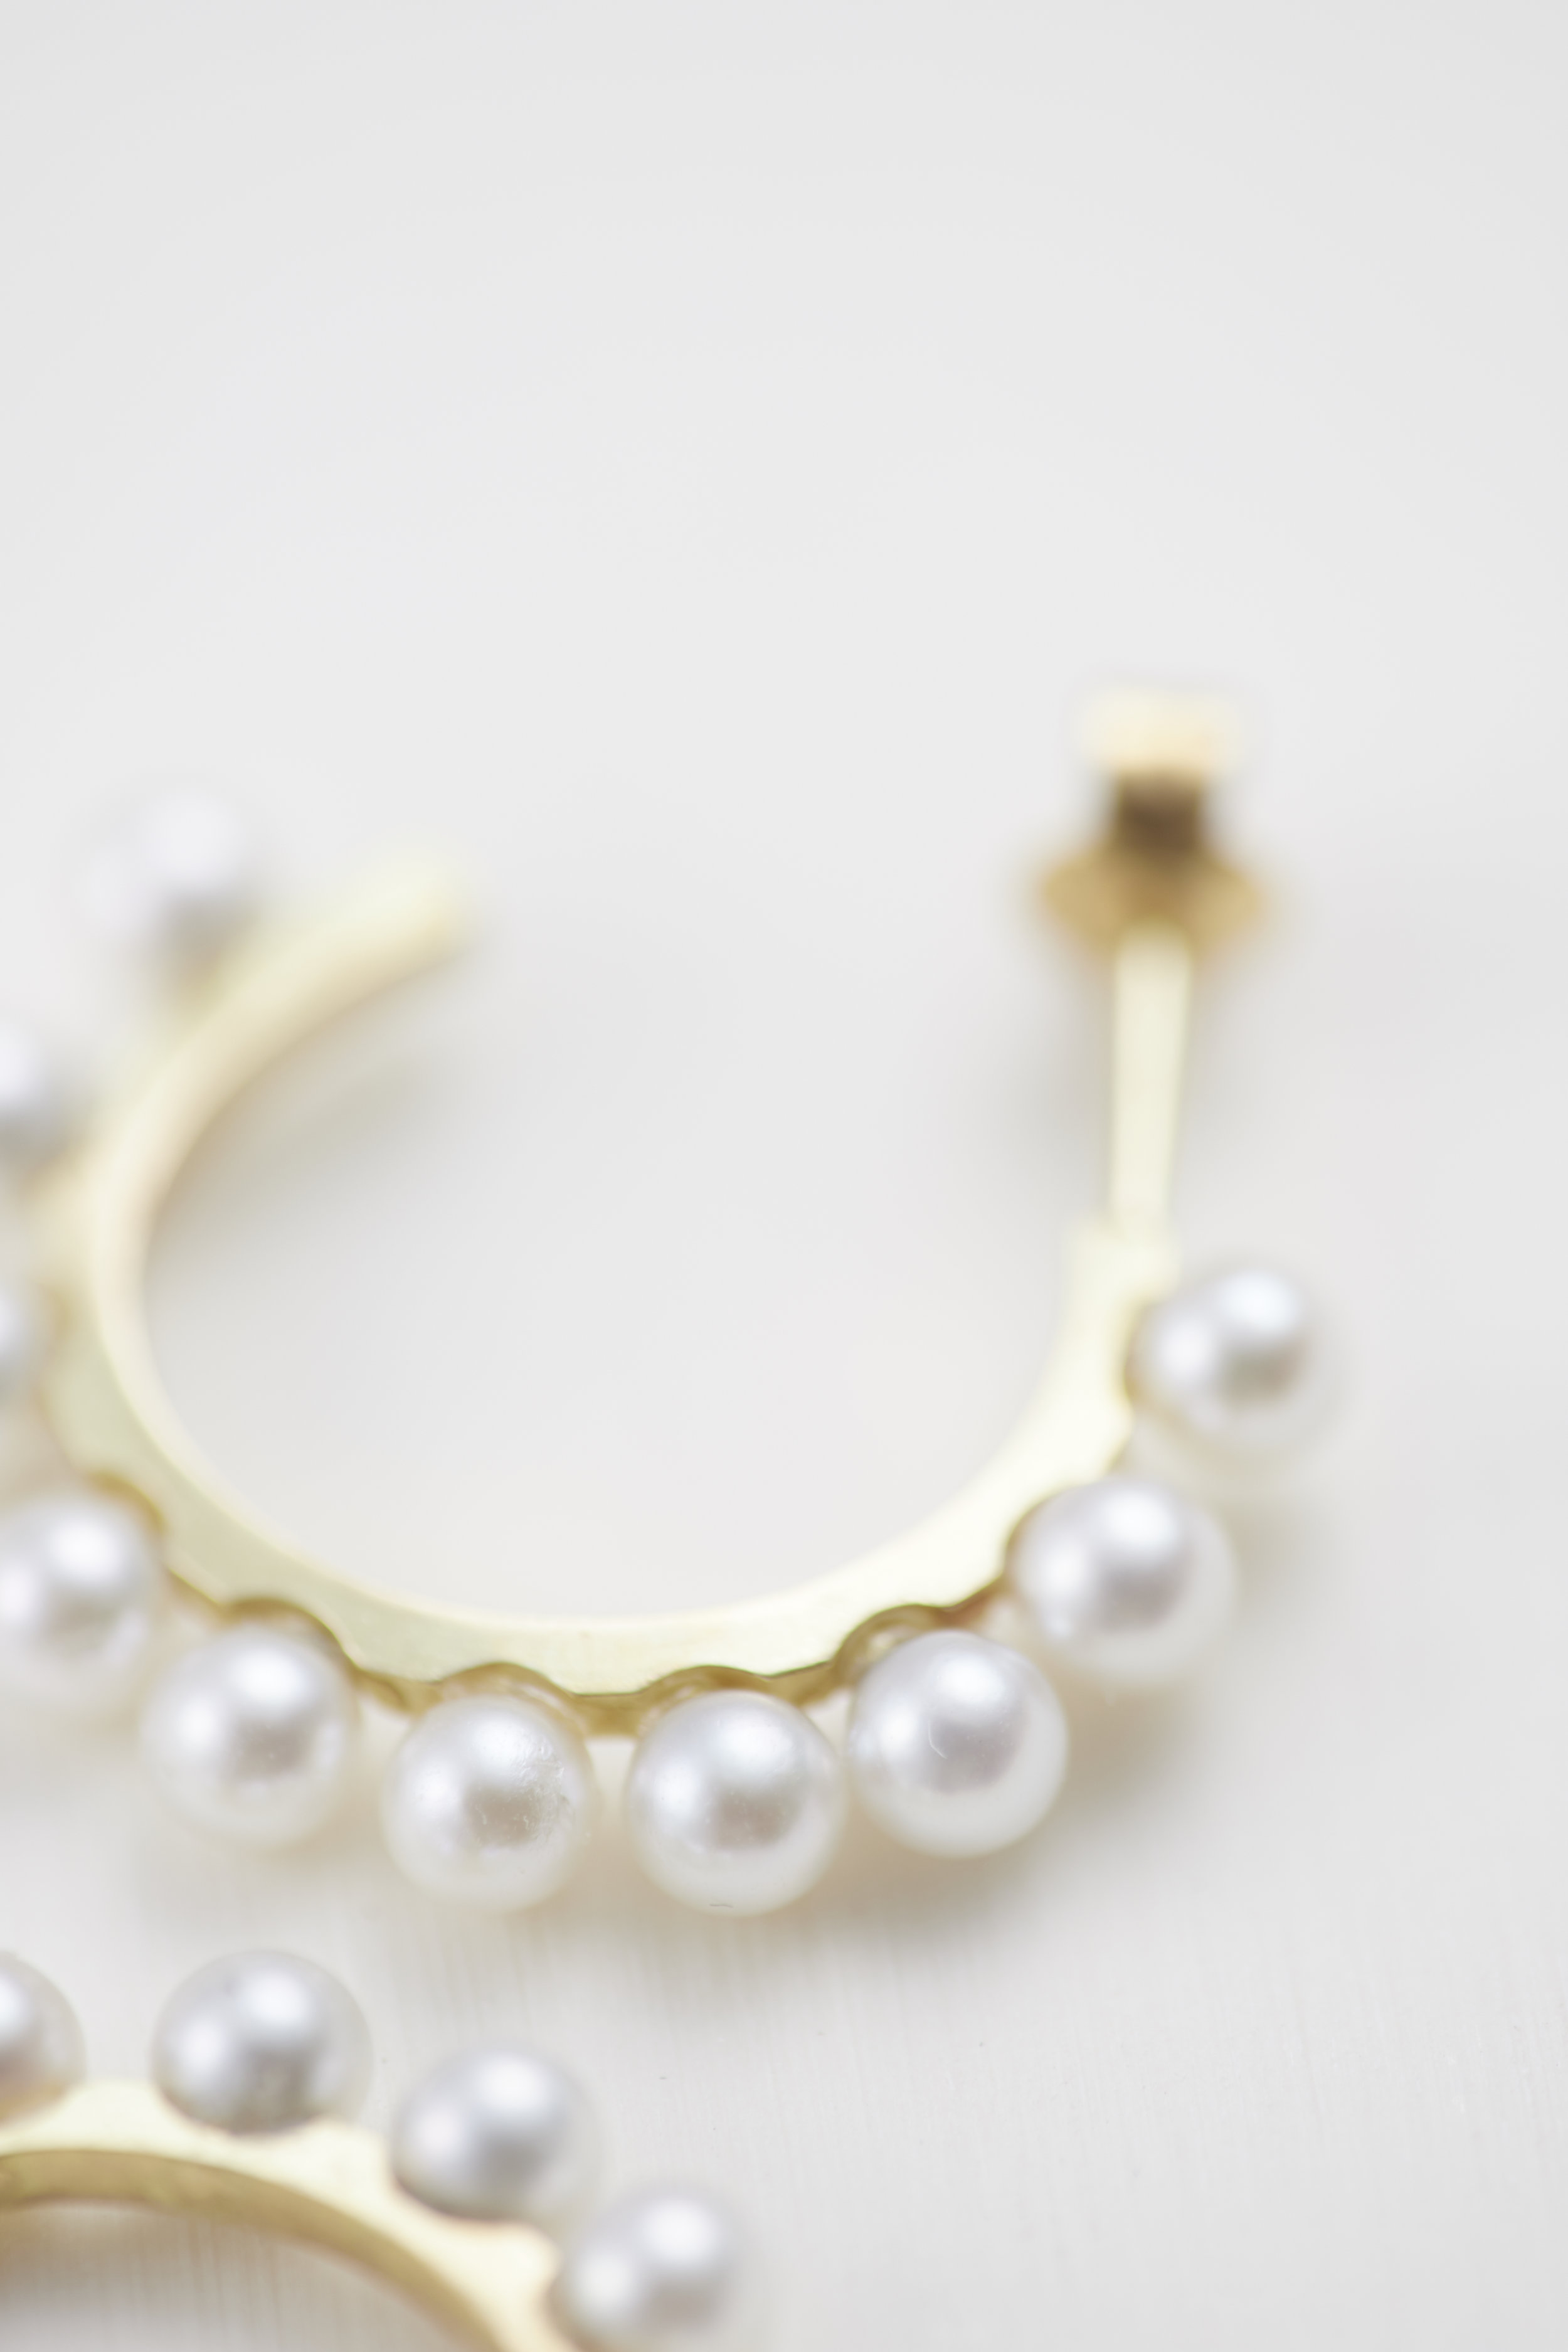 Akoya pearl hoop earrings. 18ct gold -E300126